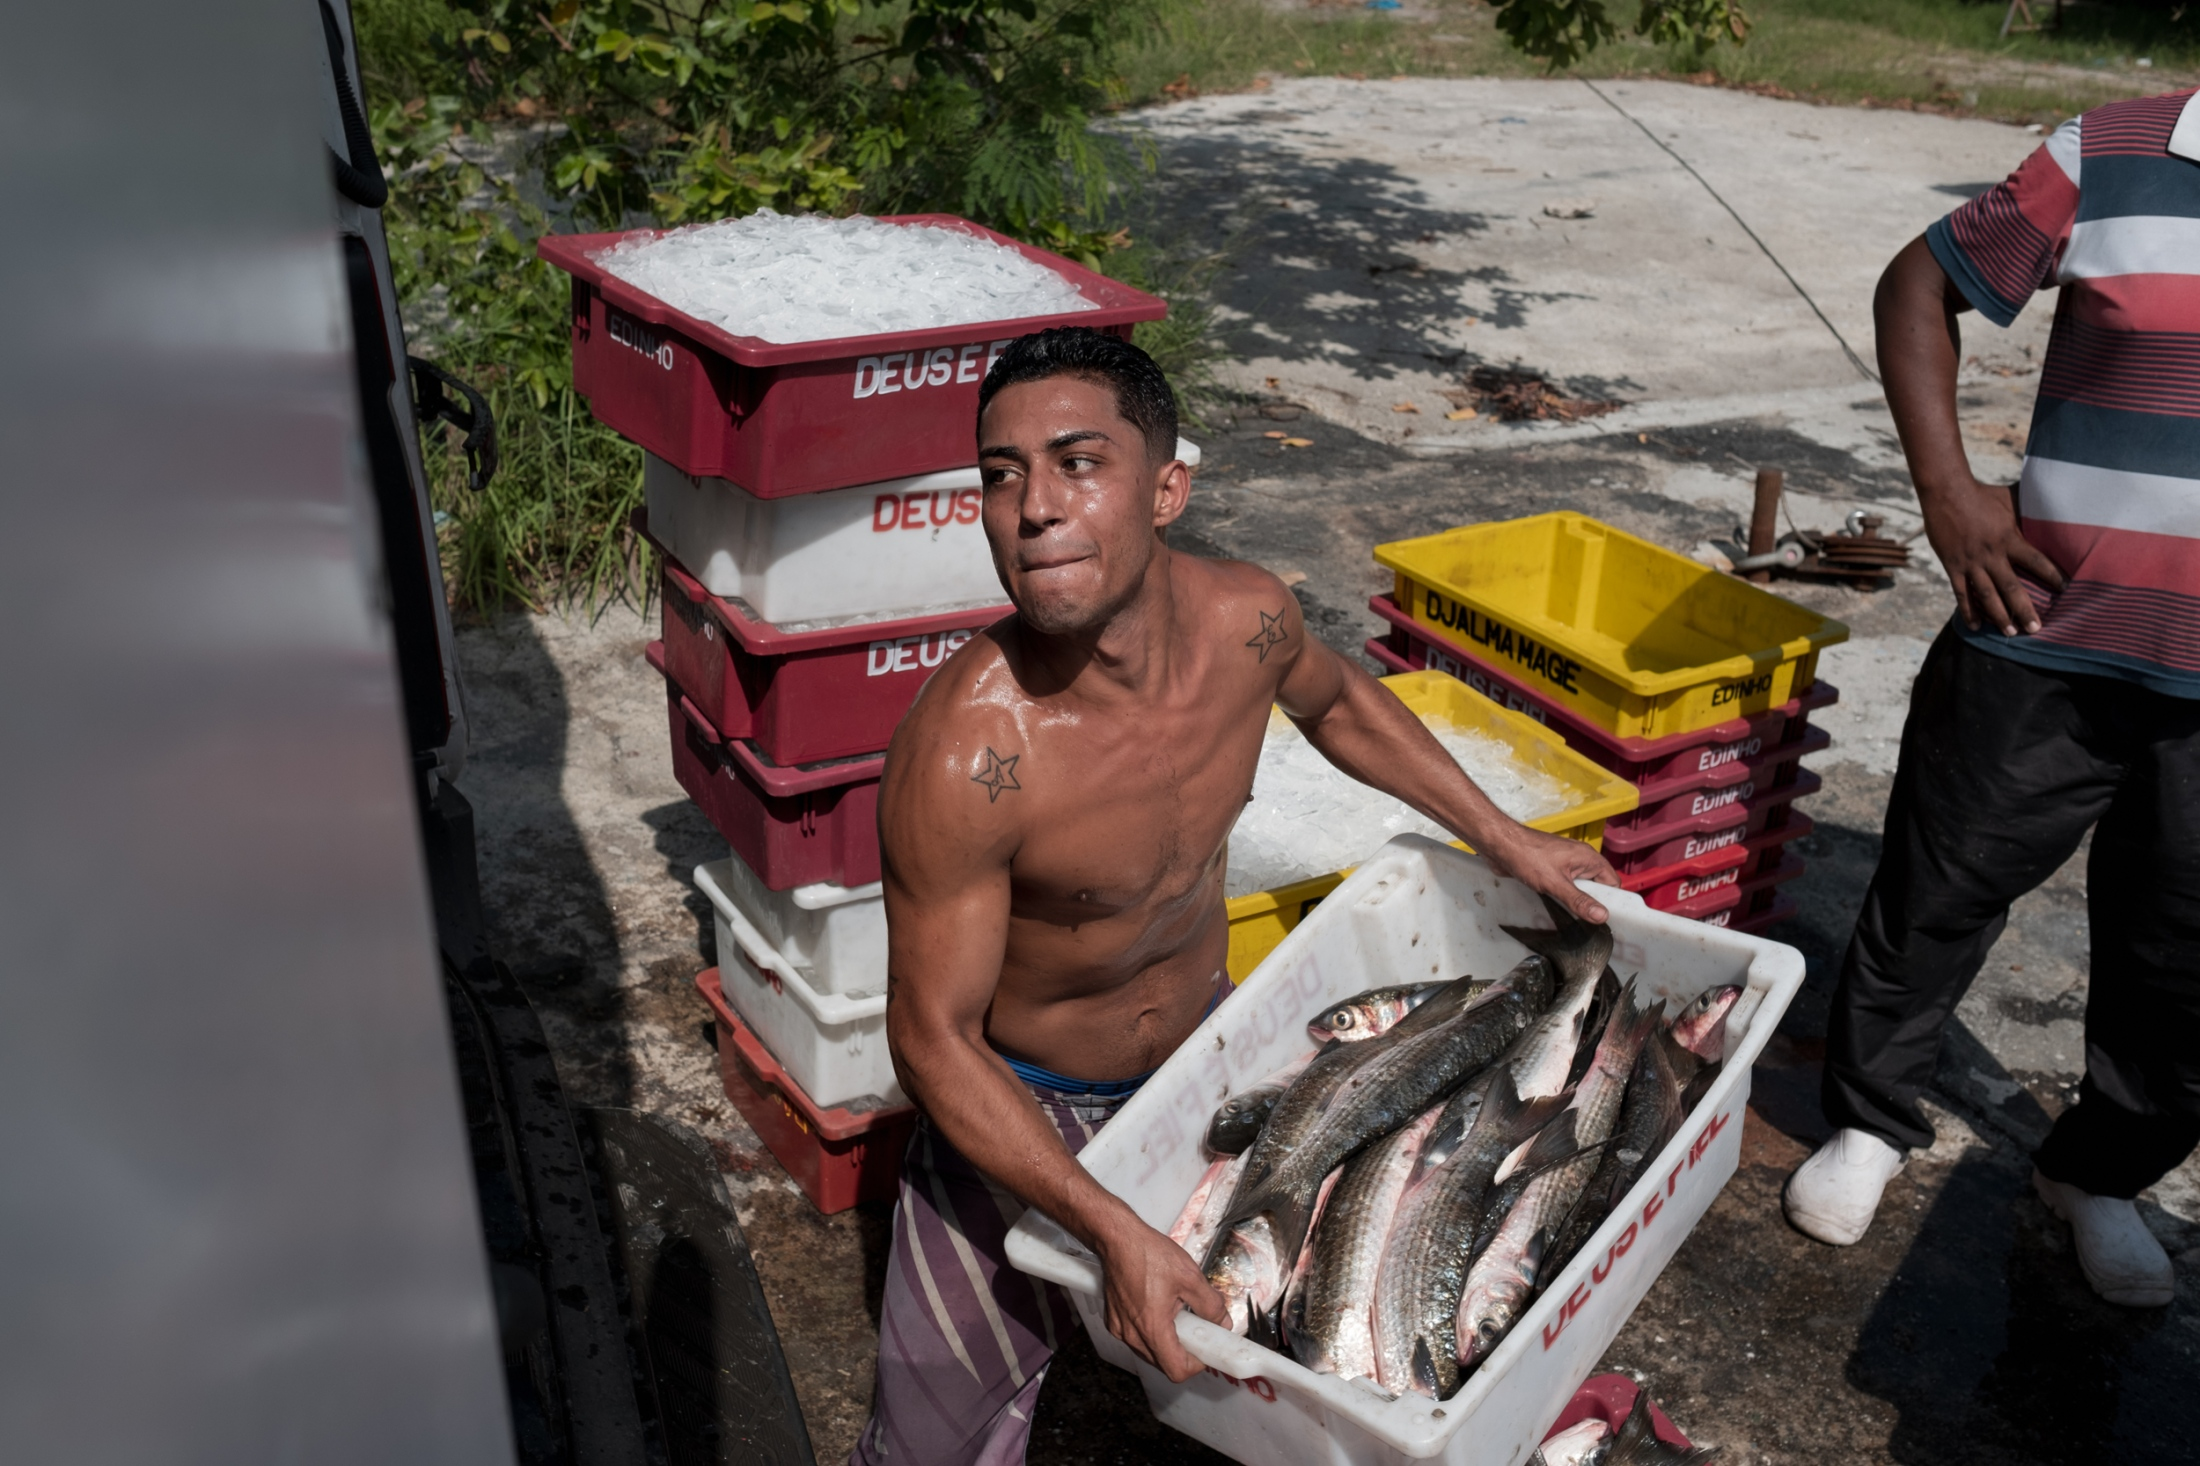 Once sorted and weighed, the fish are taken to markets on an air-conditioned truck. Most established vendors refuse to buy fish from the bay and those that do pay little and irregularly.